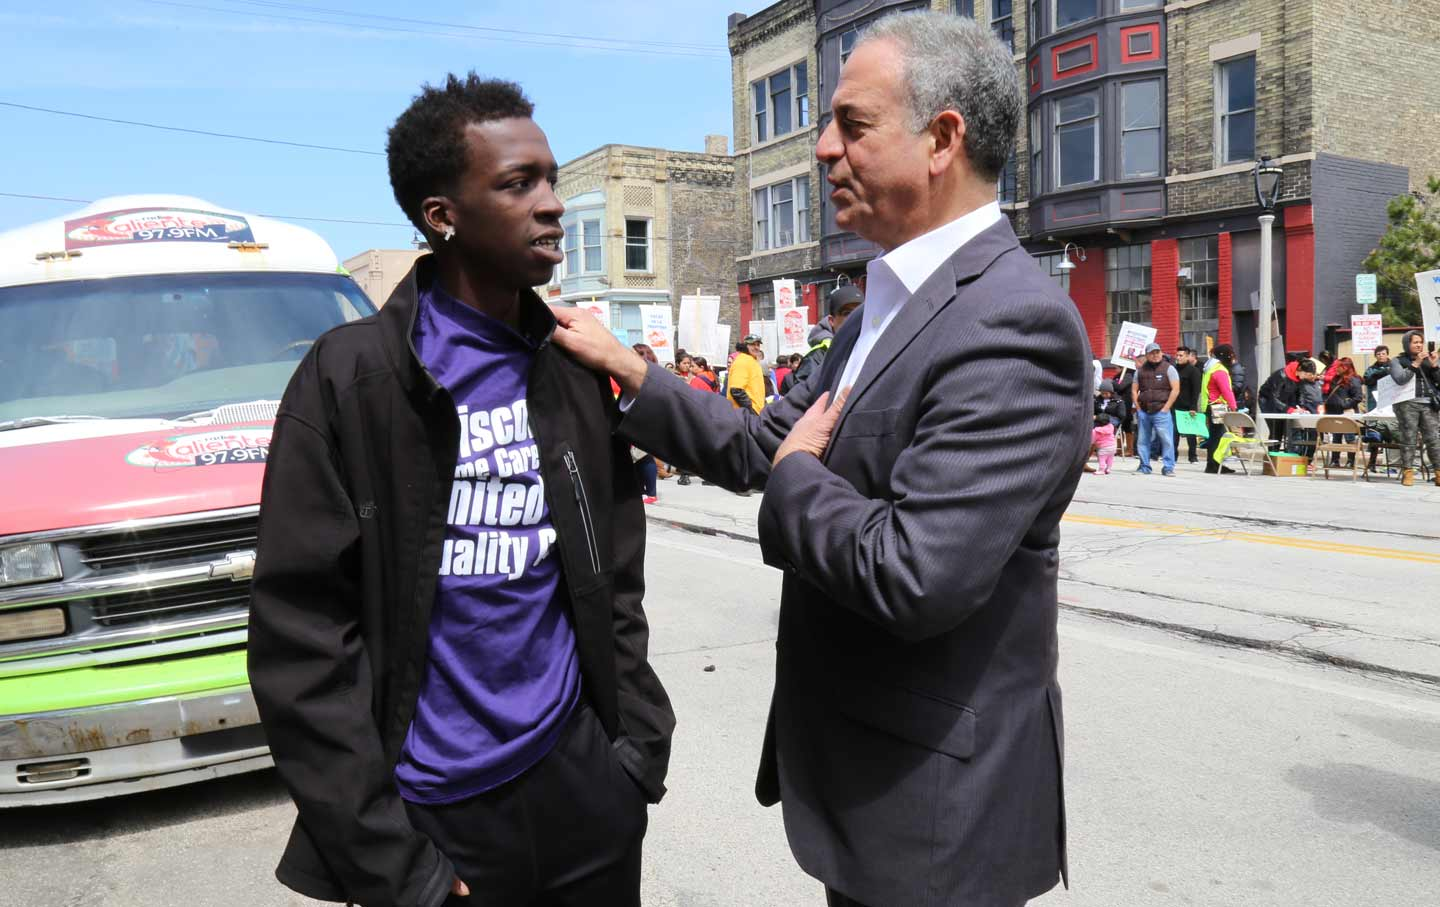 Russ Feingold campaign